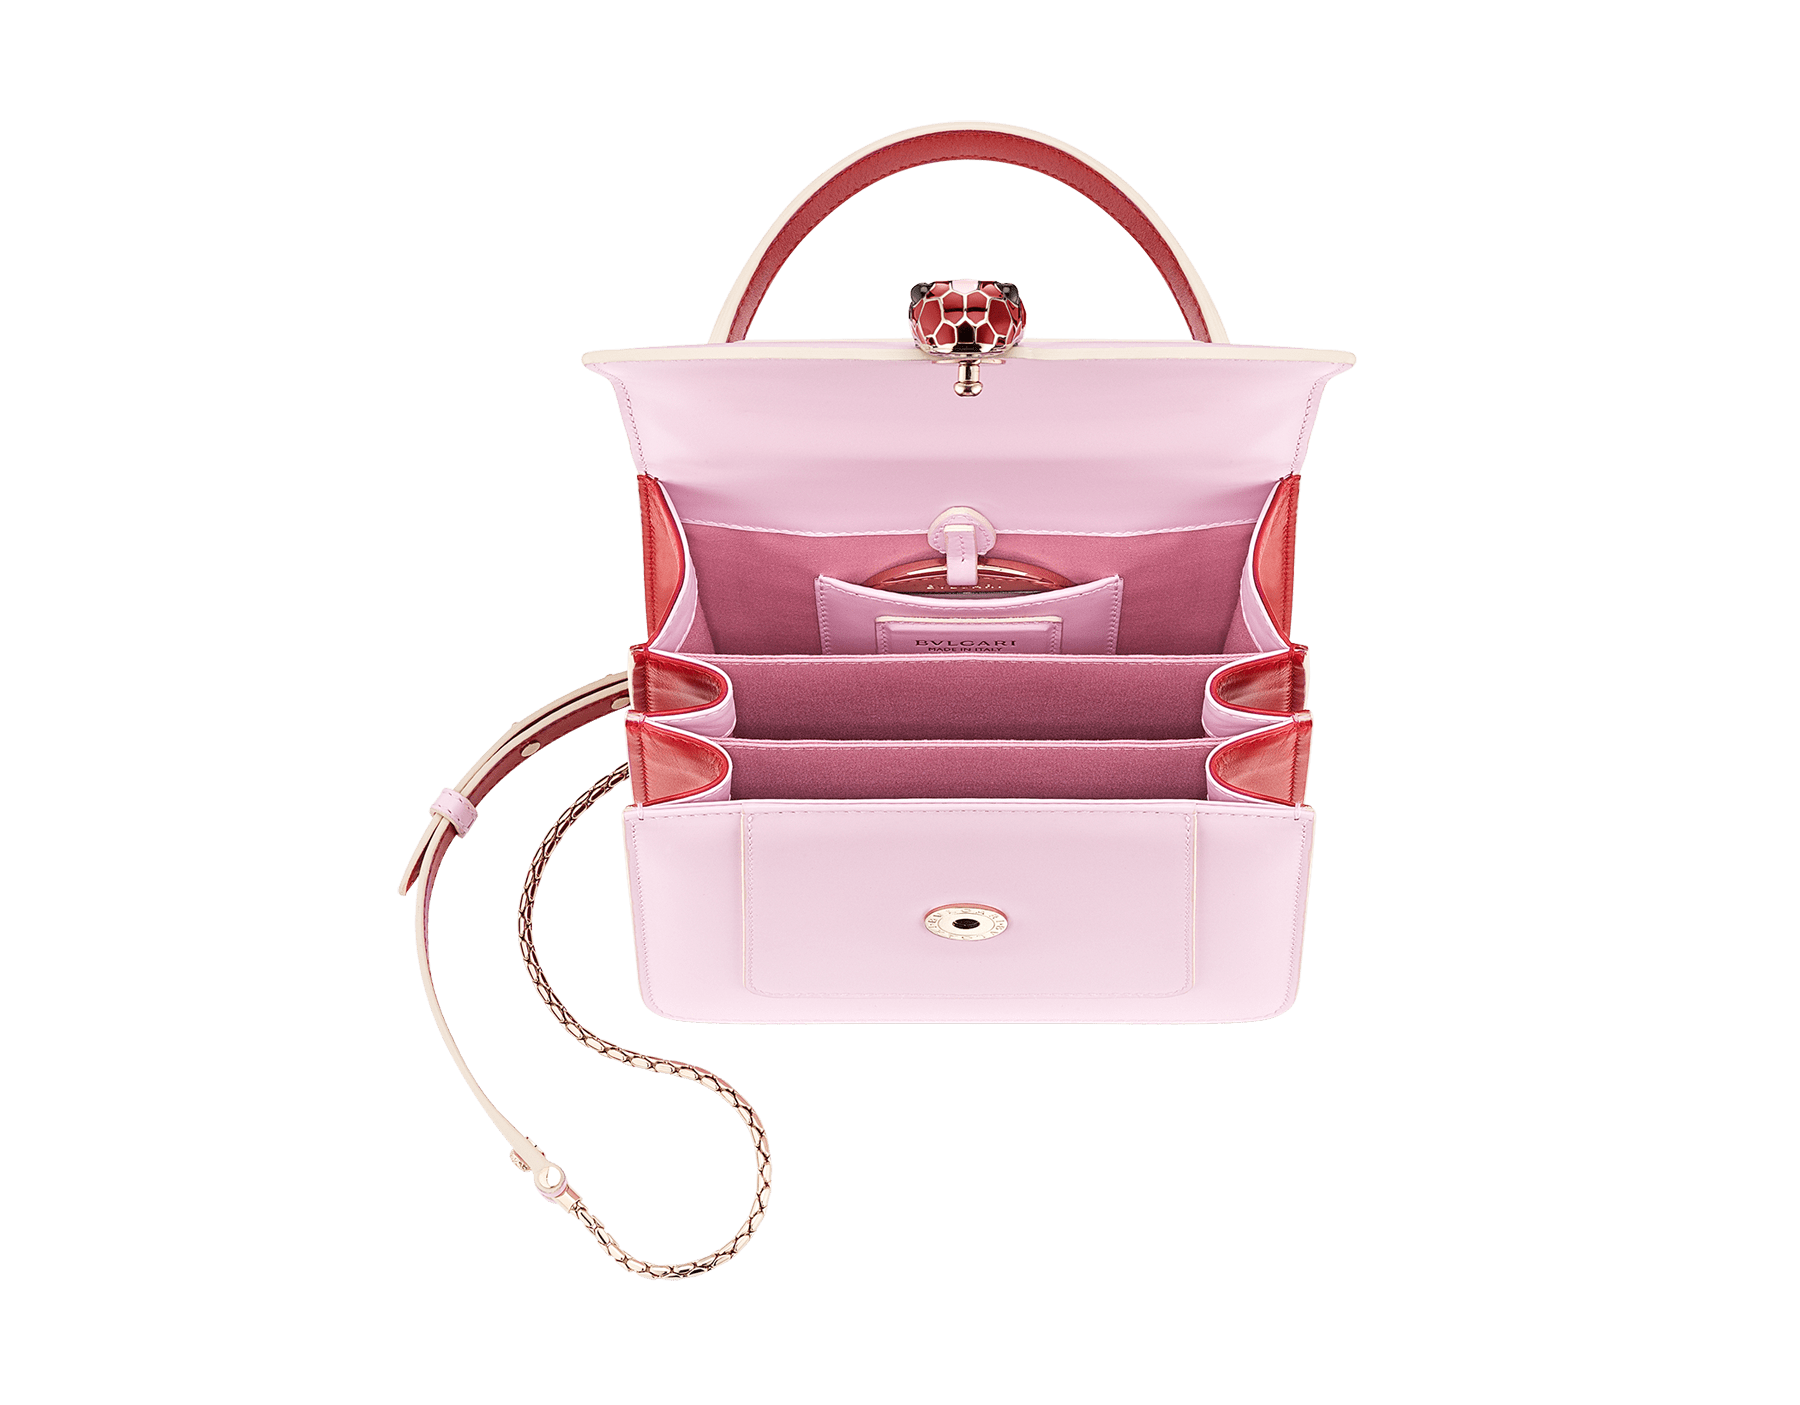 """Serpenti Forever "" crossbody bag in rosa di francia calf leather body and carmine jasper calf leather sides. Iconic snakehead closure in light gold plated brass enriched with carmine jasper and rosa di francia enamel and black onyx eyes. 289221 image 4"